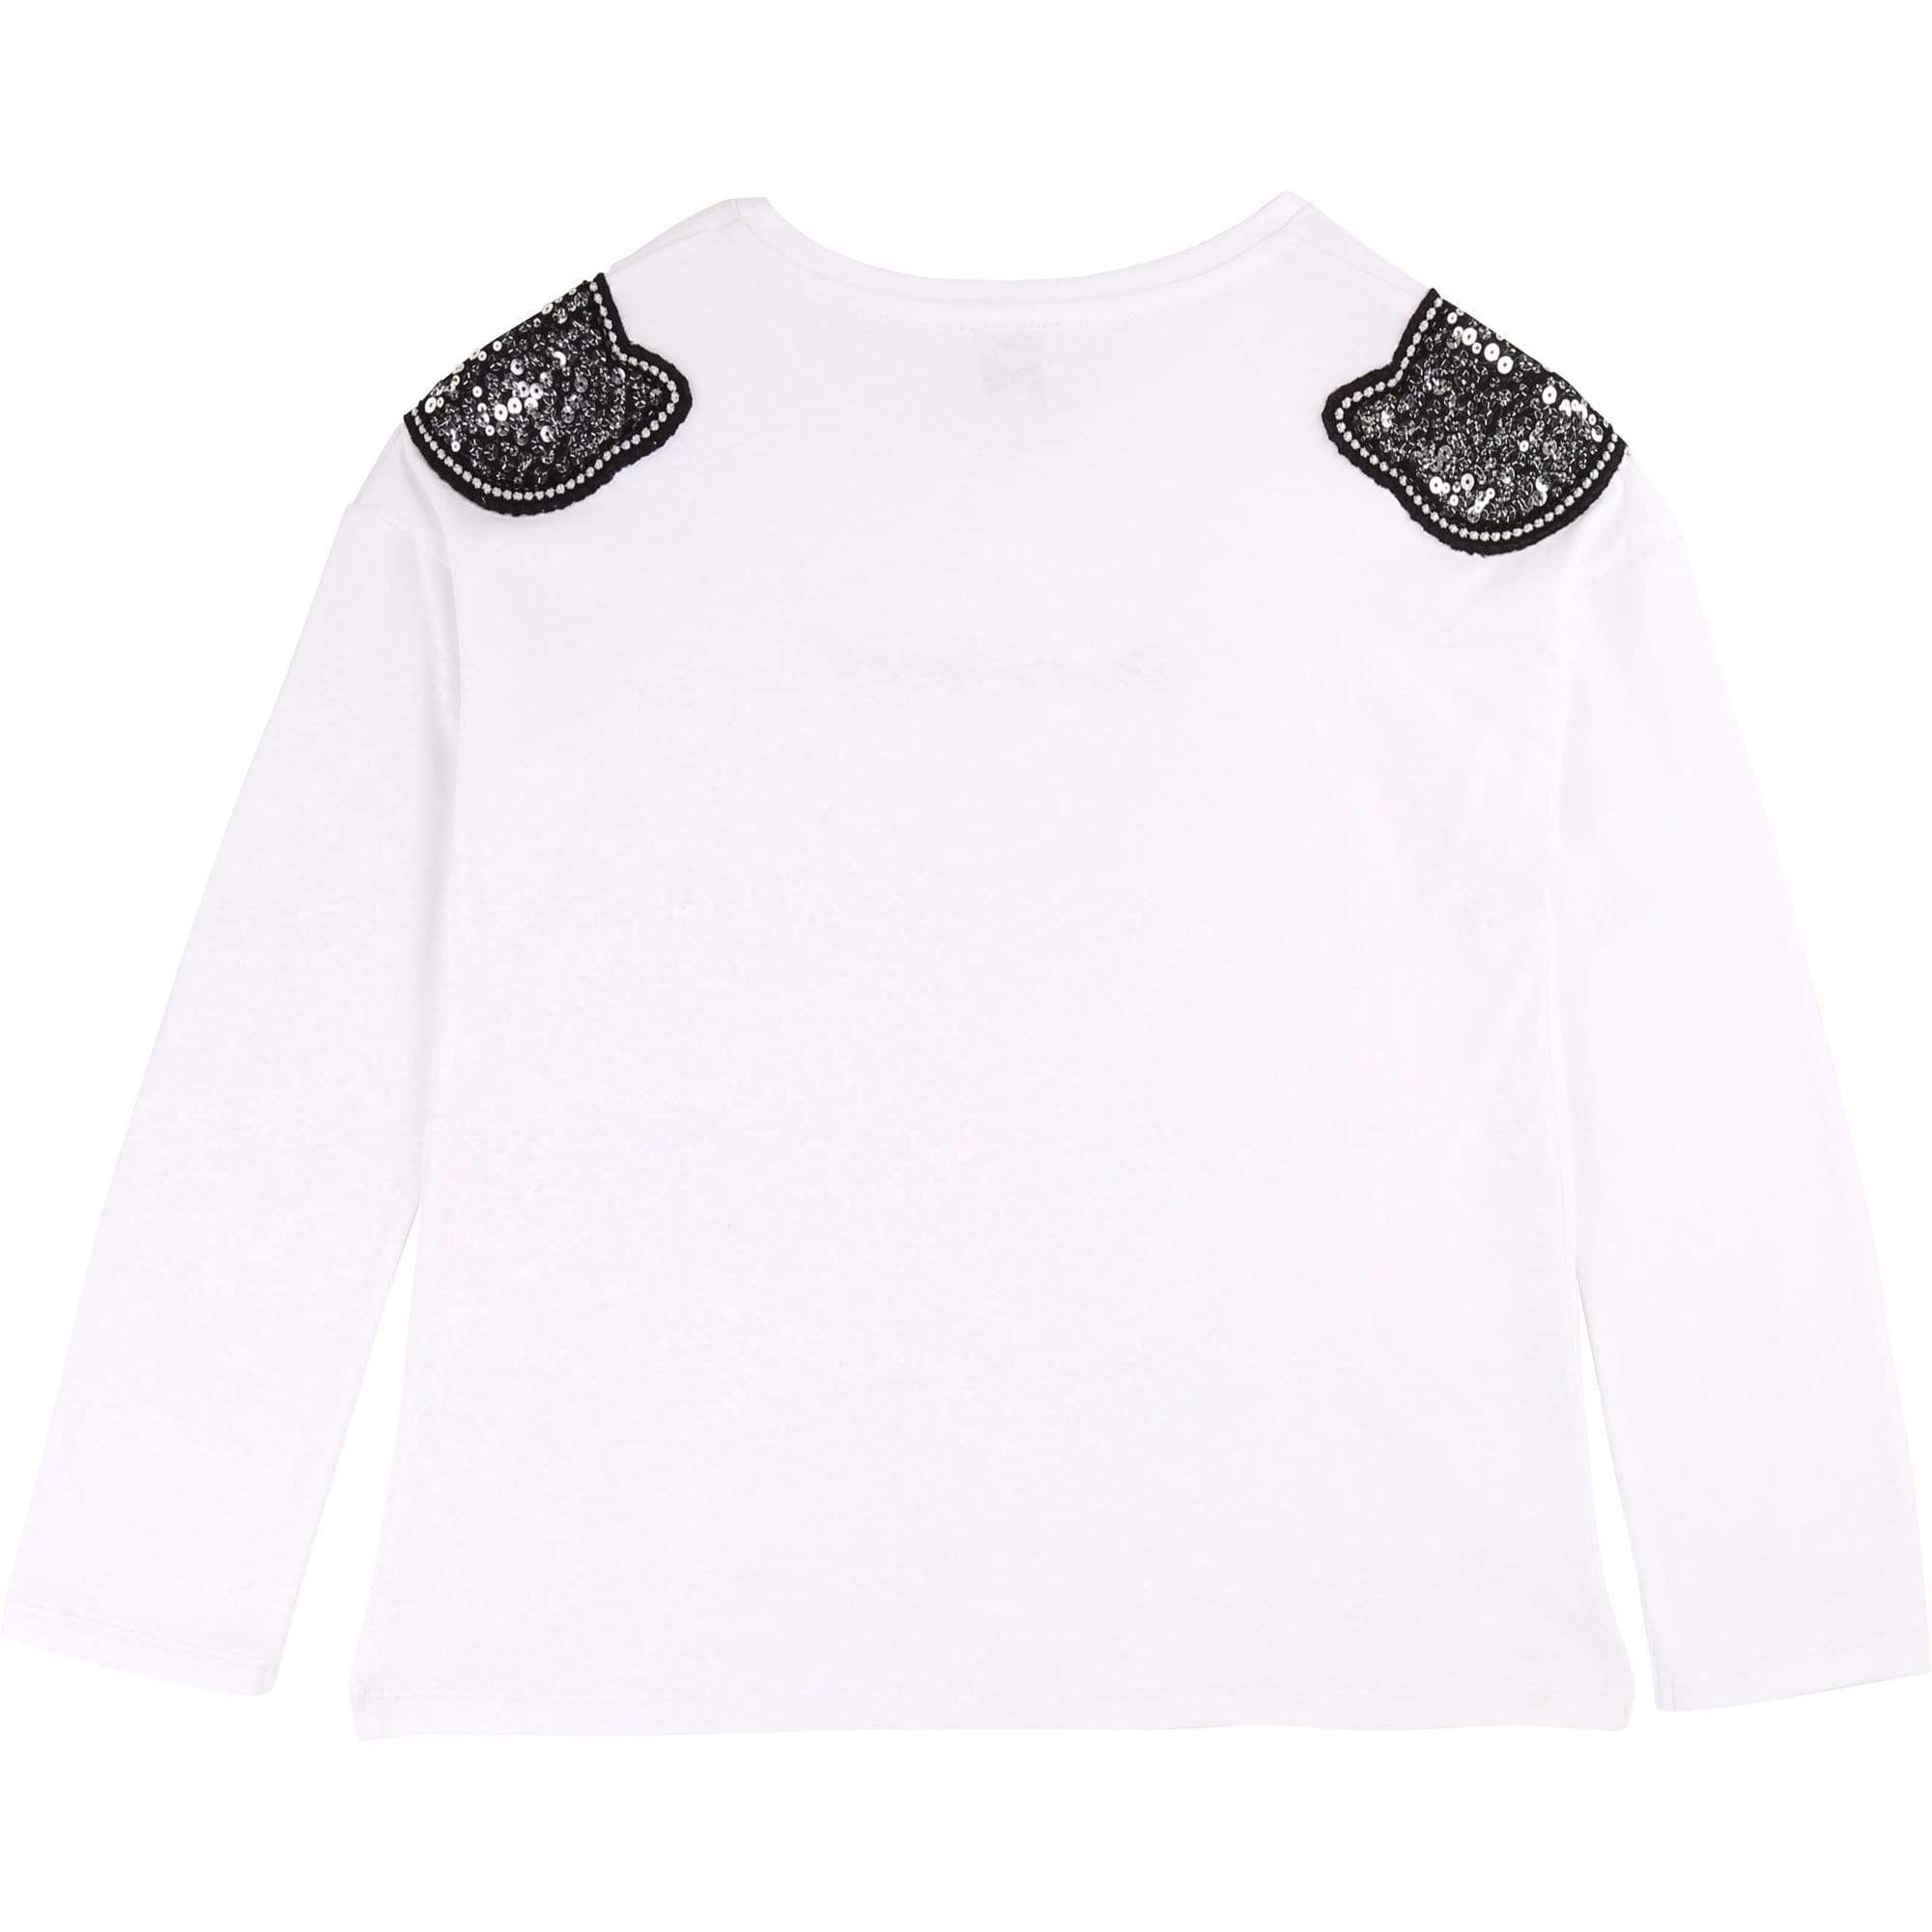 Karl Lagerfeld Chandails Tee shirt manches longues